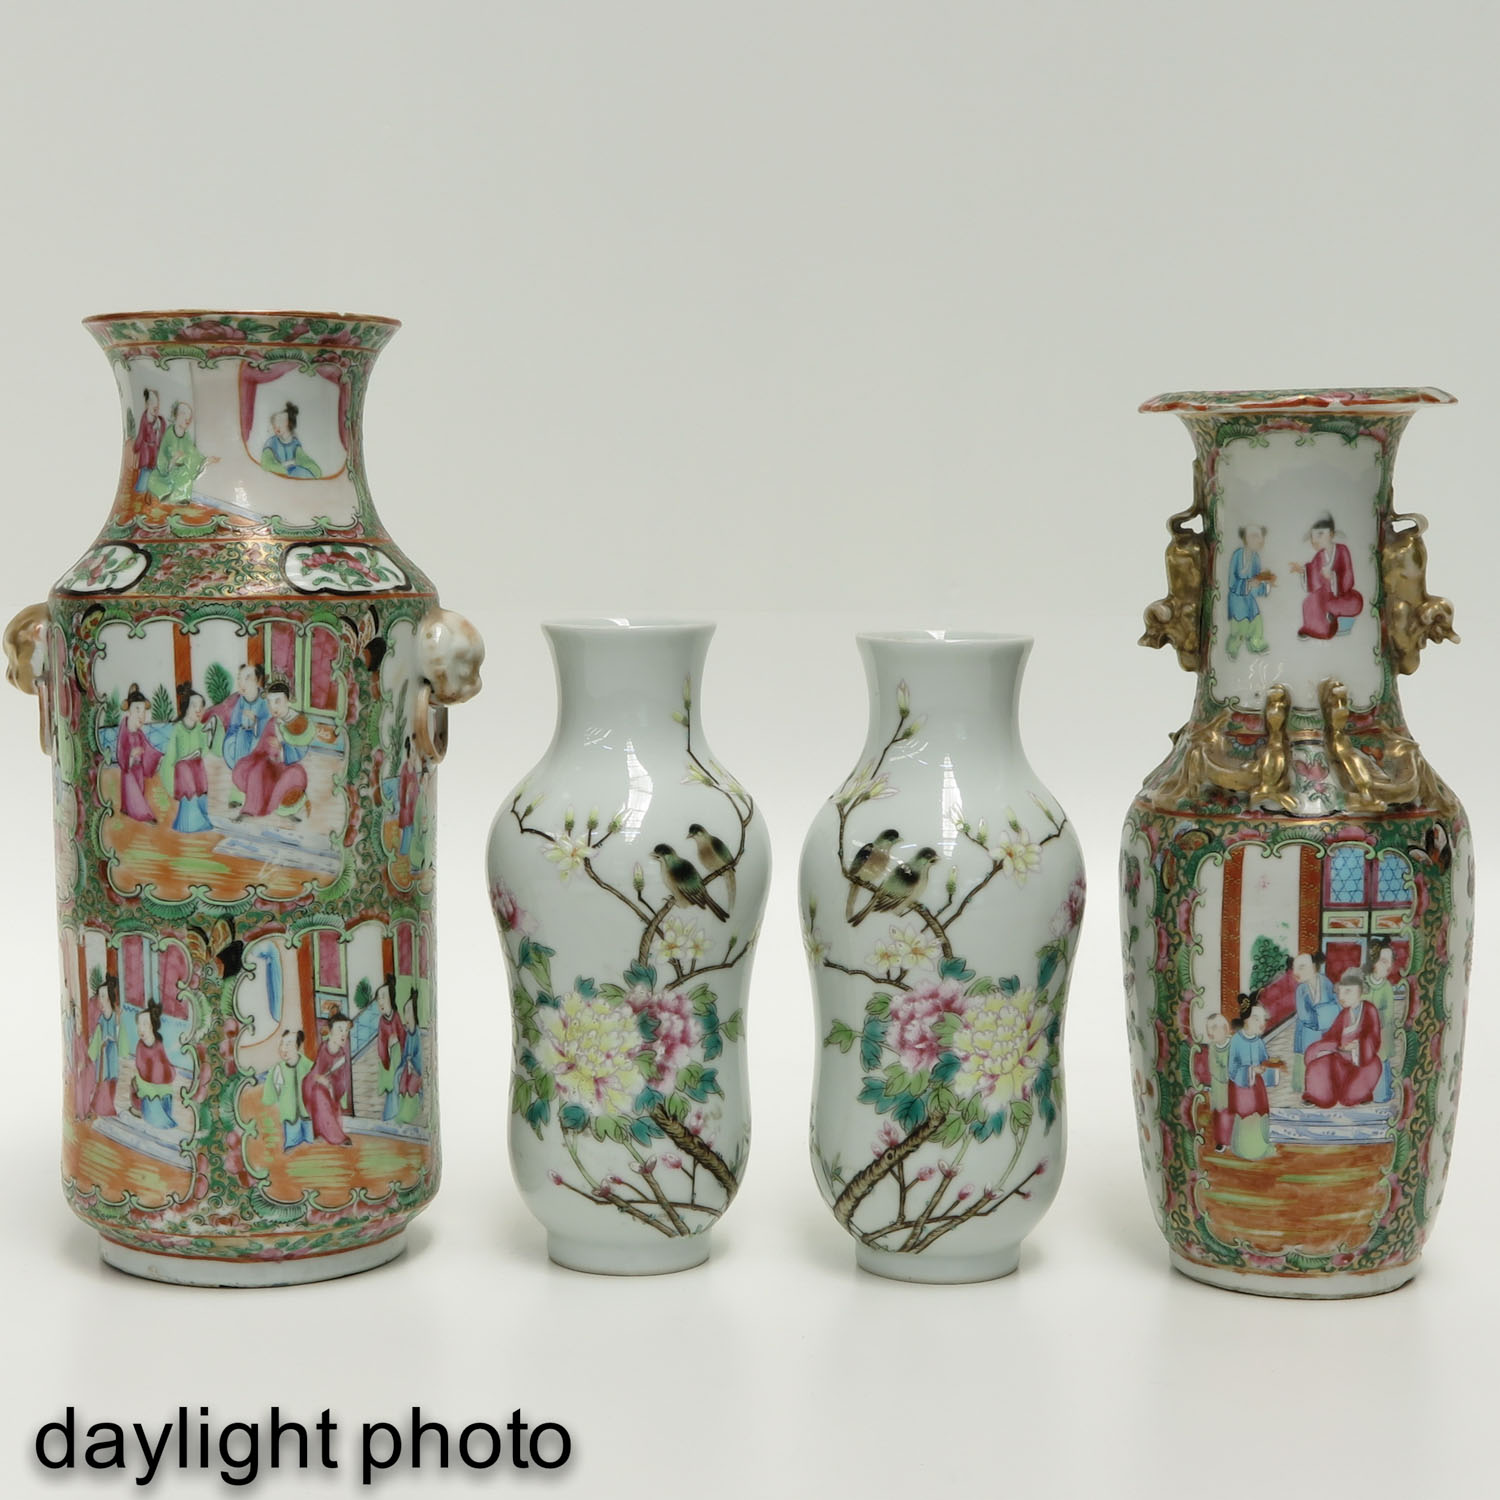 Lot 7028 - A Collection of Four Vases